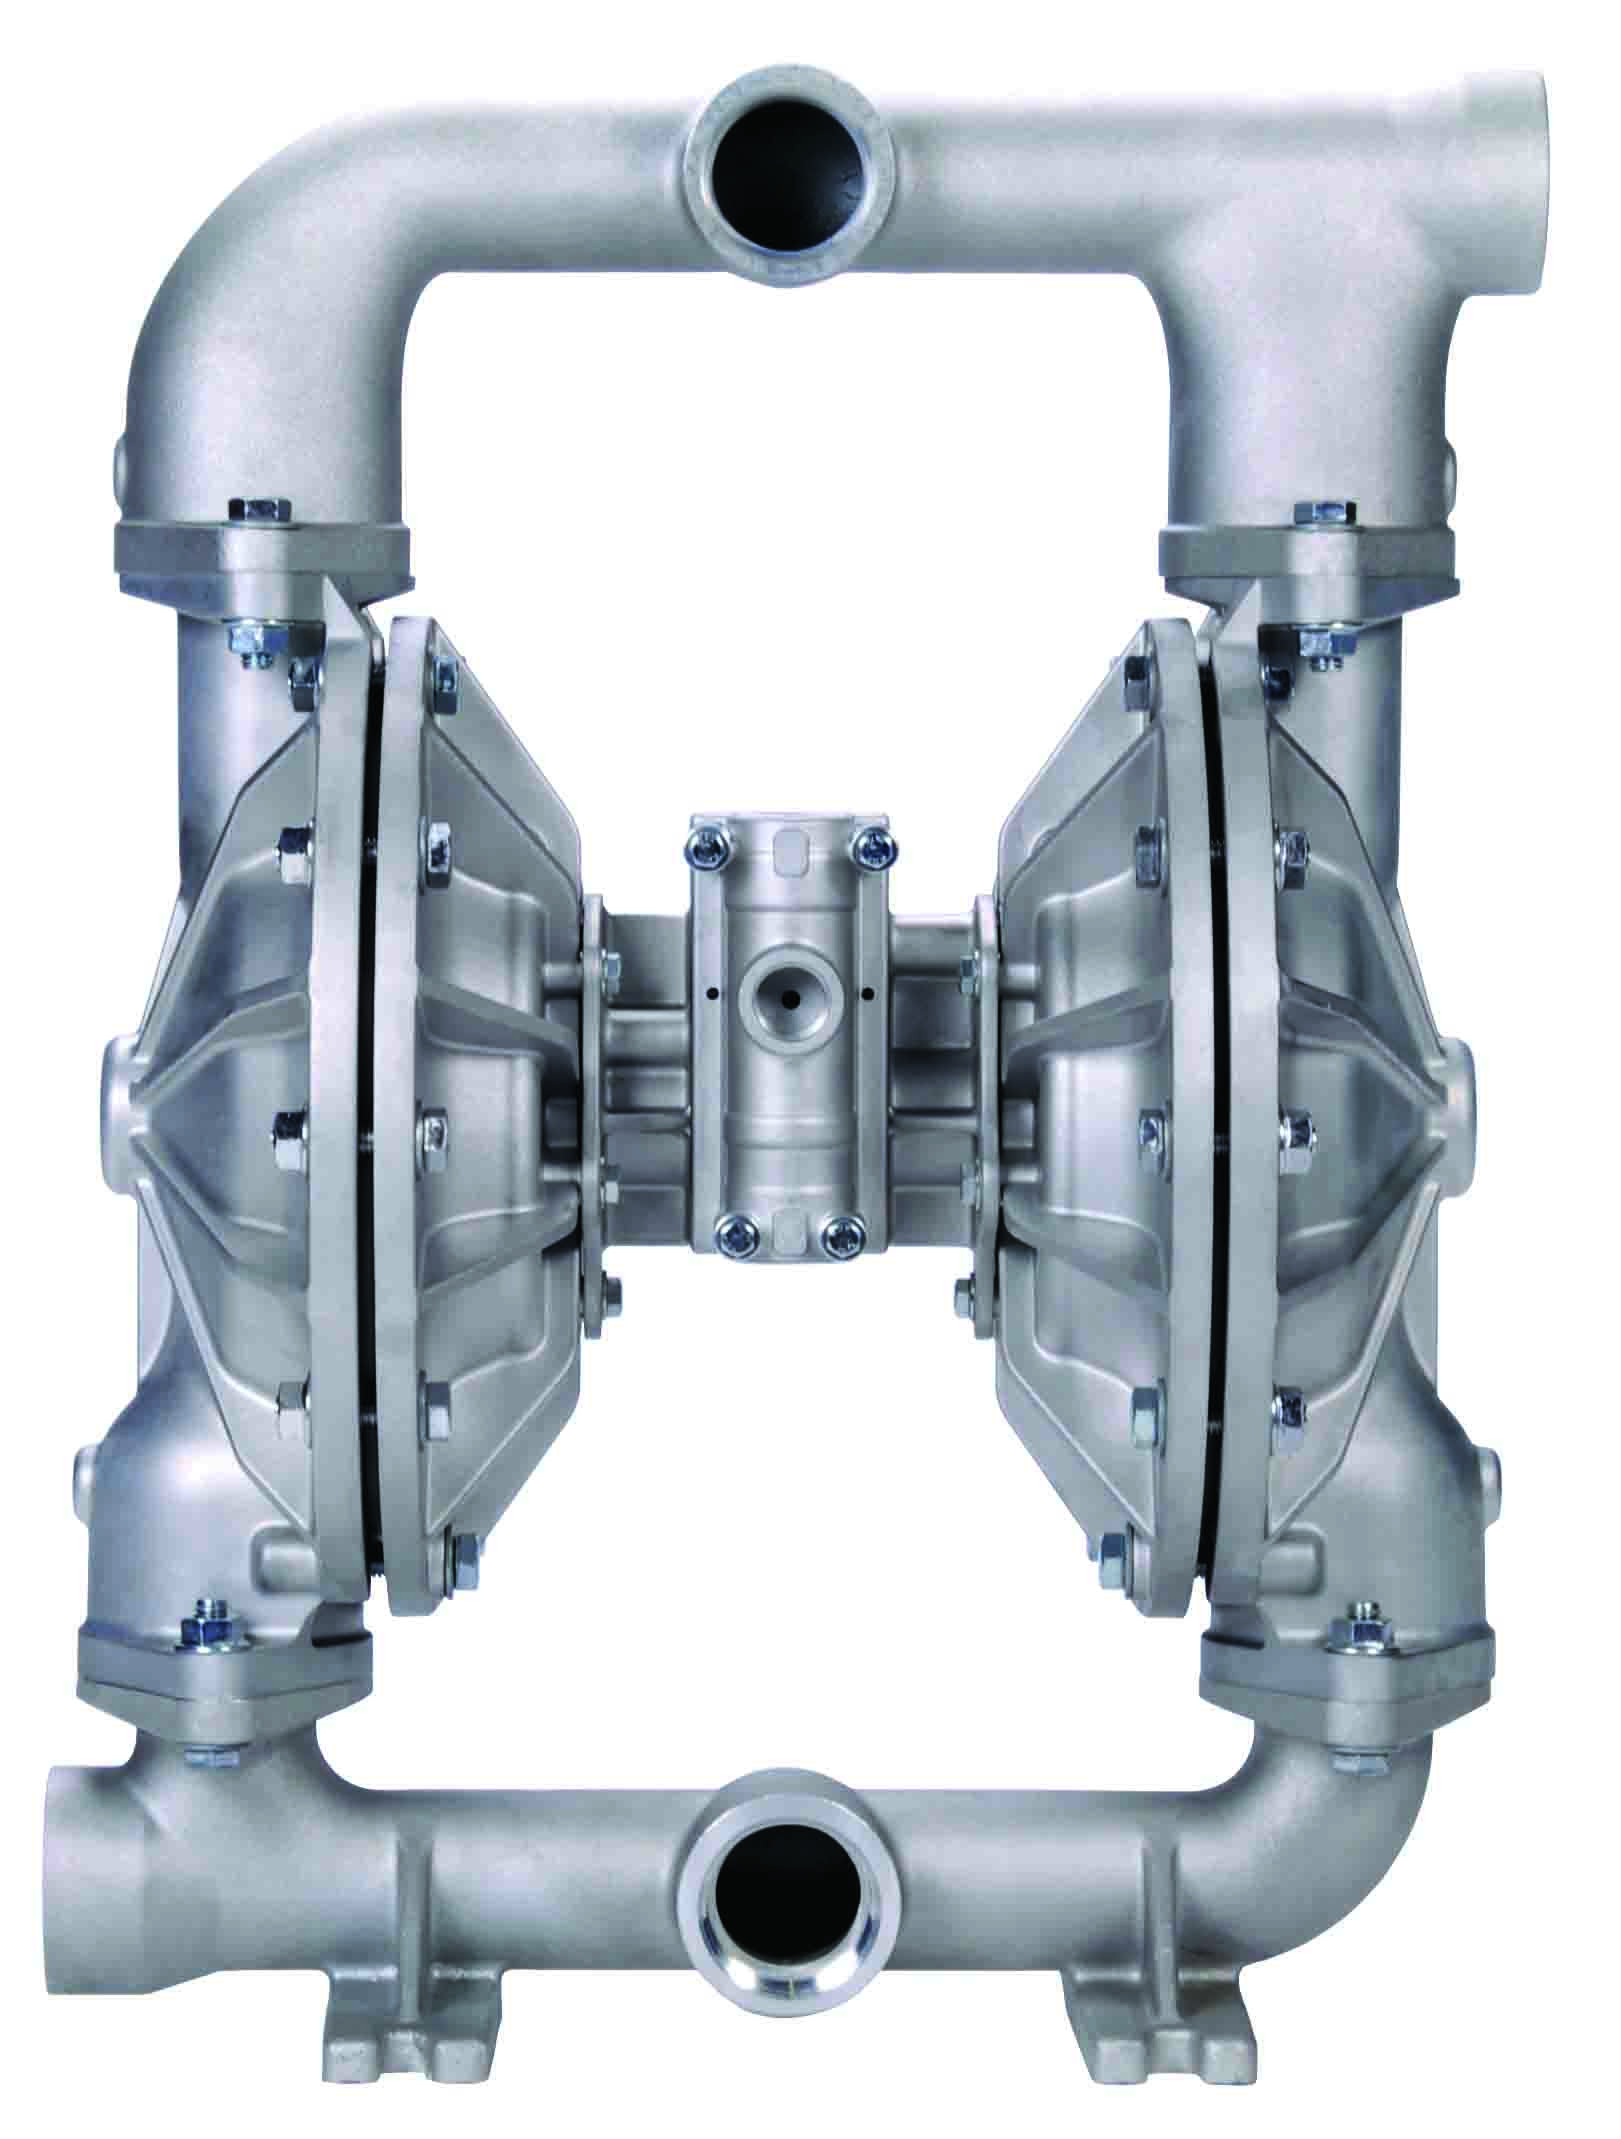 Air Operated Diaphragm Pump - Troubleshooting Guide